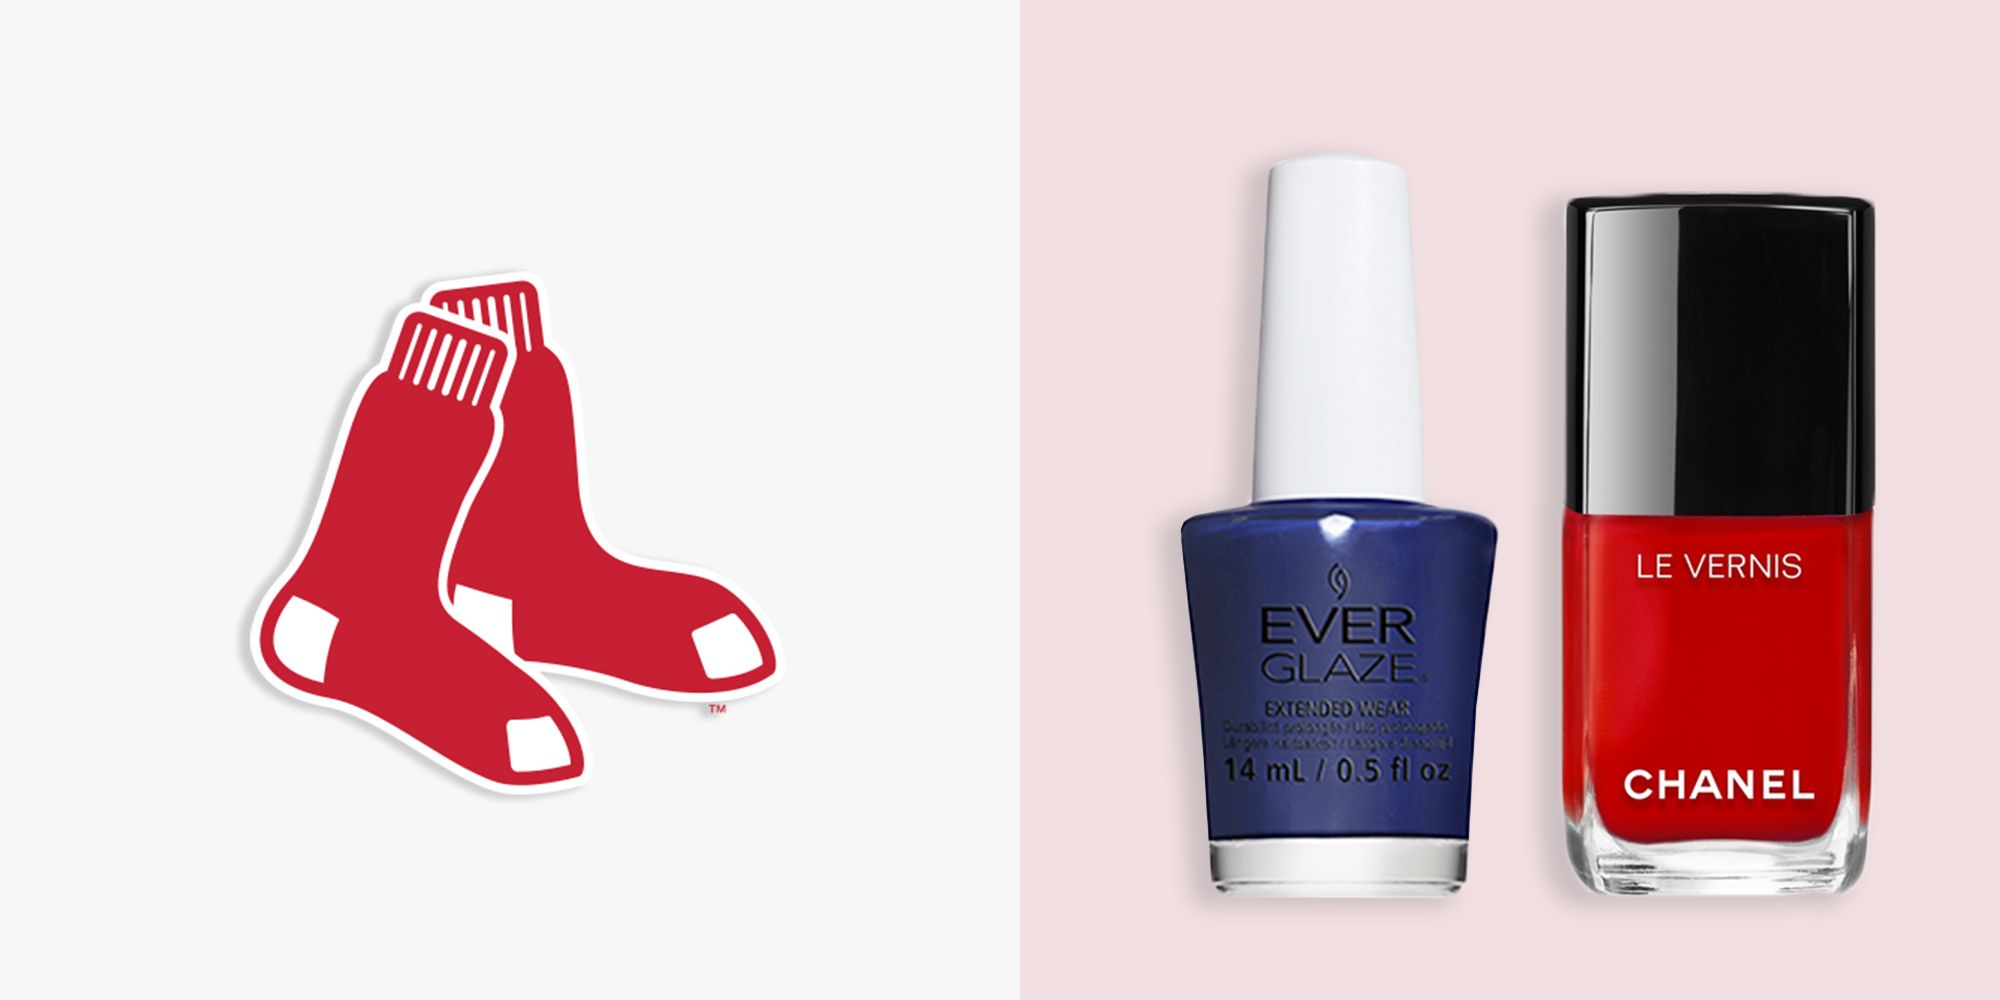 """<p><em><strong>EVERGLAZE in Navy Night, $9, <a href=""""http://www.sallybeauty.com/everglaze-nail-polish/SBS-606118,default,pd.html """" target=""""_blank"""">sallybeauty.com</a>&#x3B; <em><strong>Chanel Le Vernis in 500 Rouge Essentiel, $28, <a href=""""http://www.chanel.com/en_US/fragrance-beauty/makeup-colour-le-vernis-140404/sku/140410"""" target=""""_blank"""">chanel.com</a></strong></em> </strong></em><br></p><p>If you fancy yourself a frequent visitor of Fenway Park during baseball season, this bold pair of red and blue should be on your radar. Make your first pick known by painting each nail with Chanel's candy apple red, and add navy accents to sport the team's other mascot shade.</p>"""